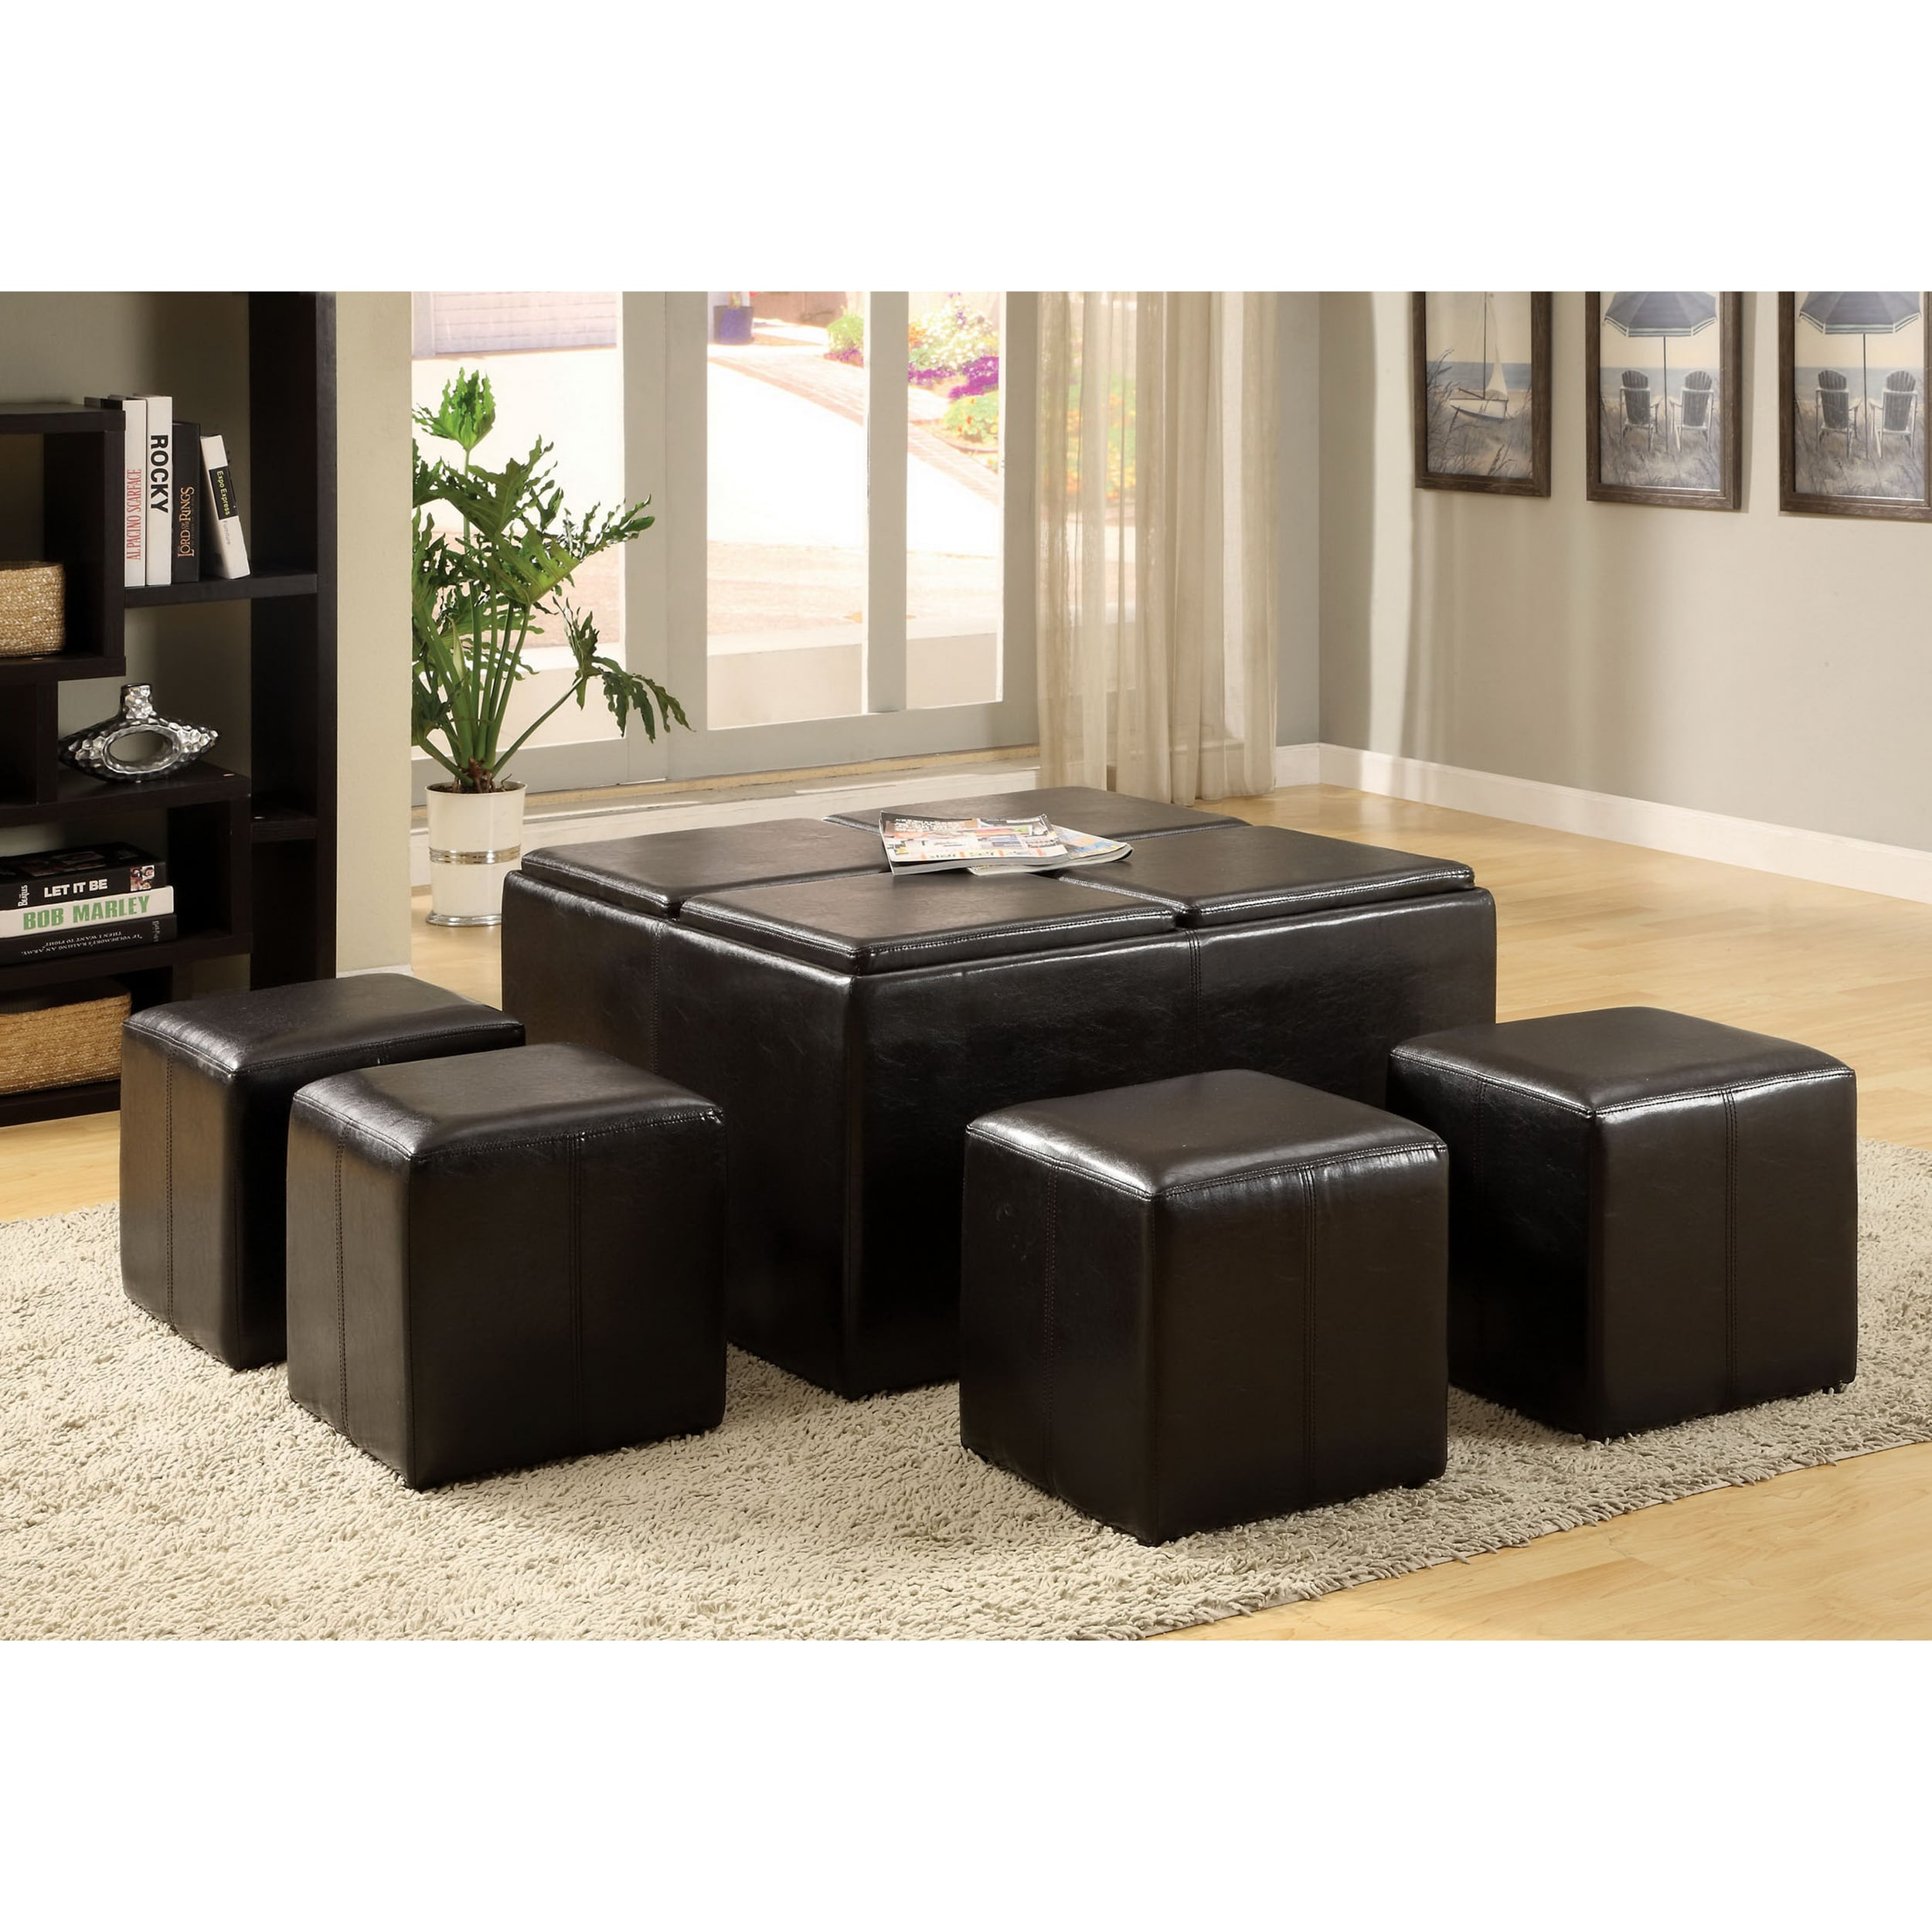 Remarkable Furniture Of America Miller Faux Leather Storage Ottoman With Four Nesting Stools And Serving Trays Machost Co Dining Chair Design Ideas Machostcouk